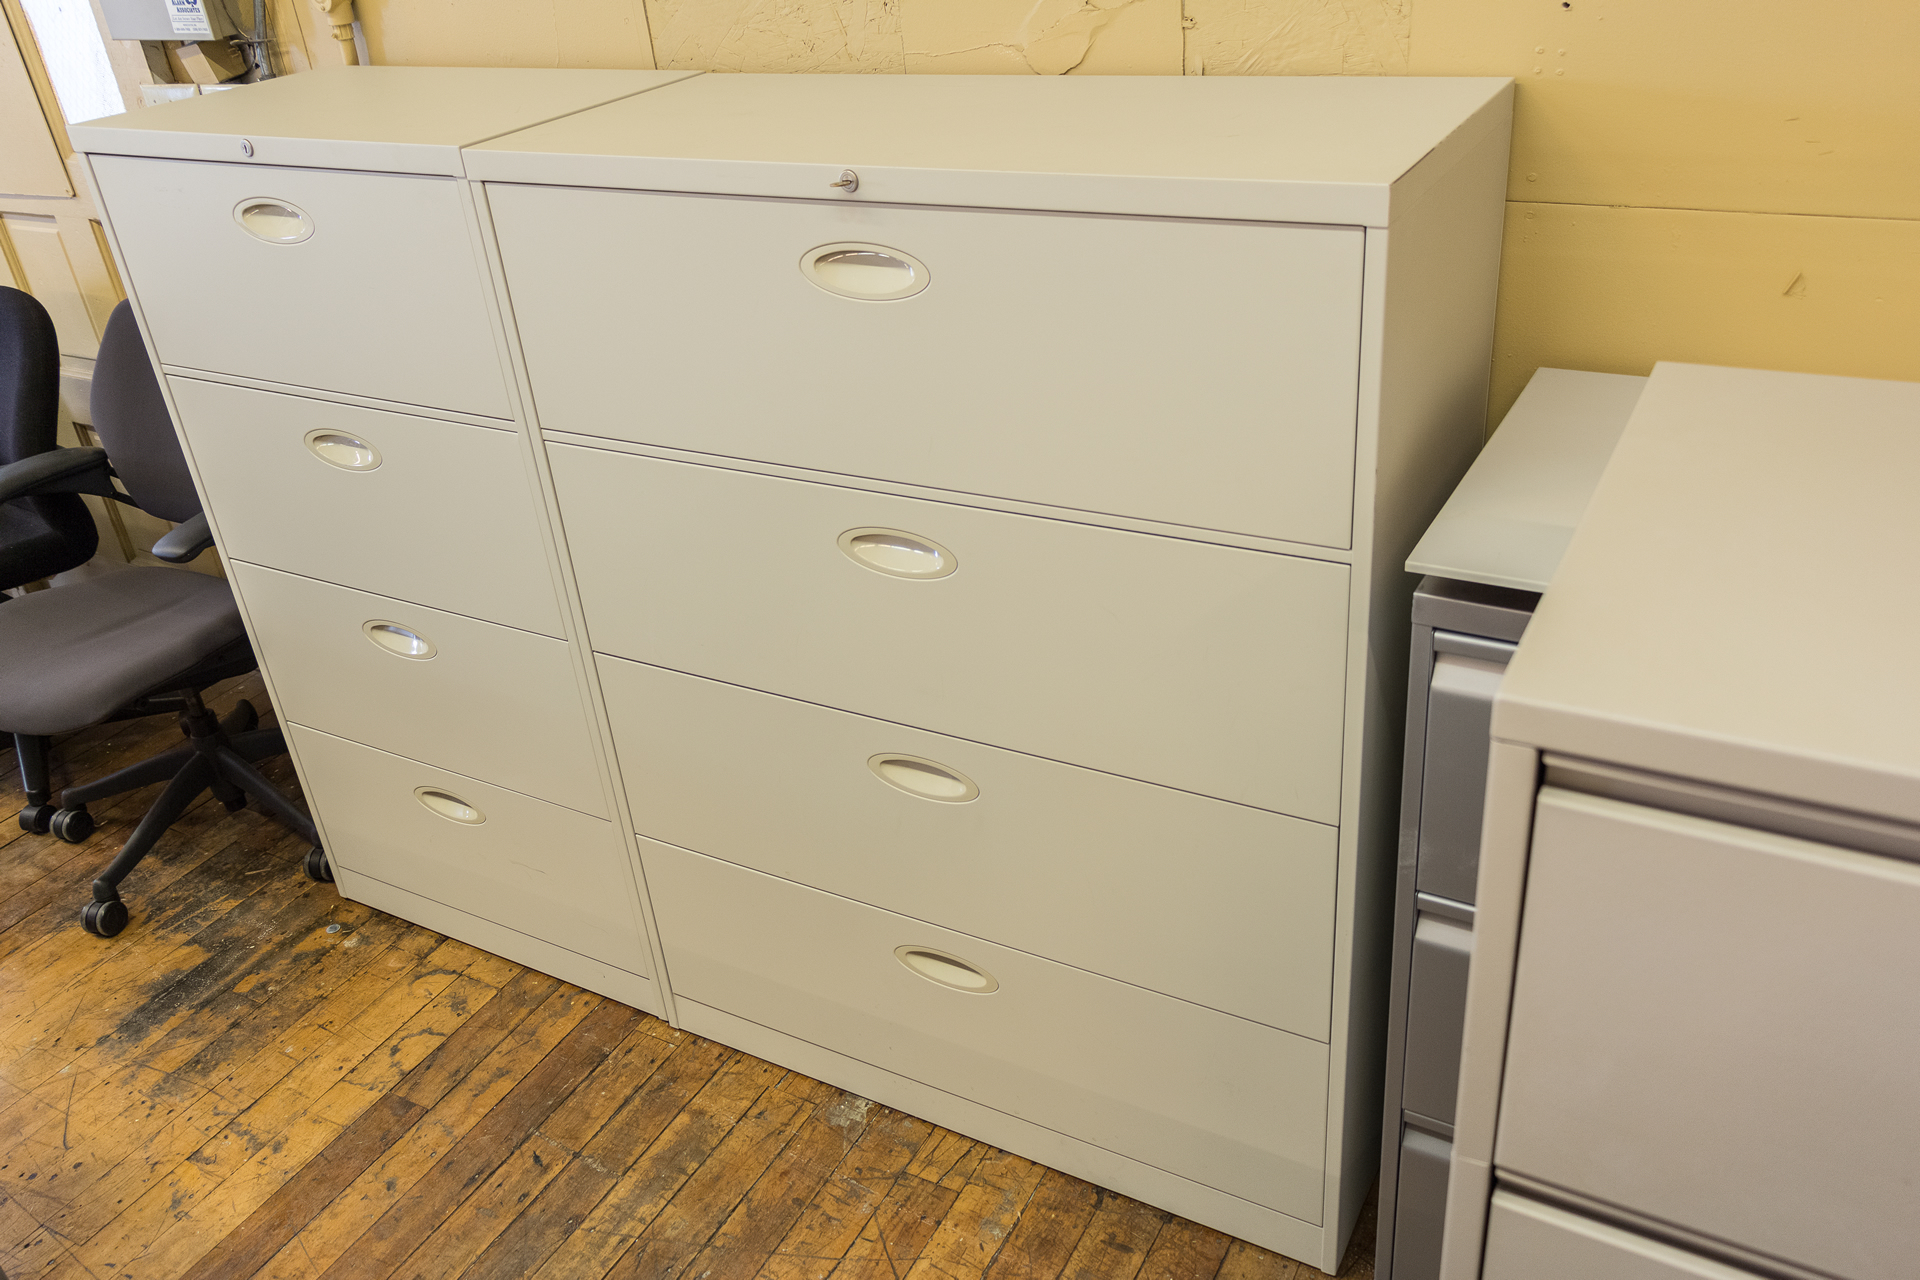 peartreeofficefurniture_peartreeofficefurniture_peartreeofficefurniture_img_9963.jpg